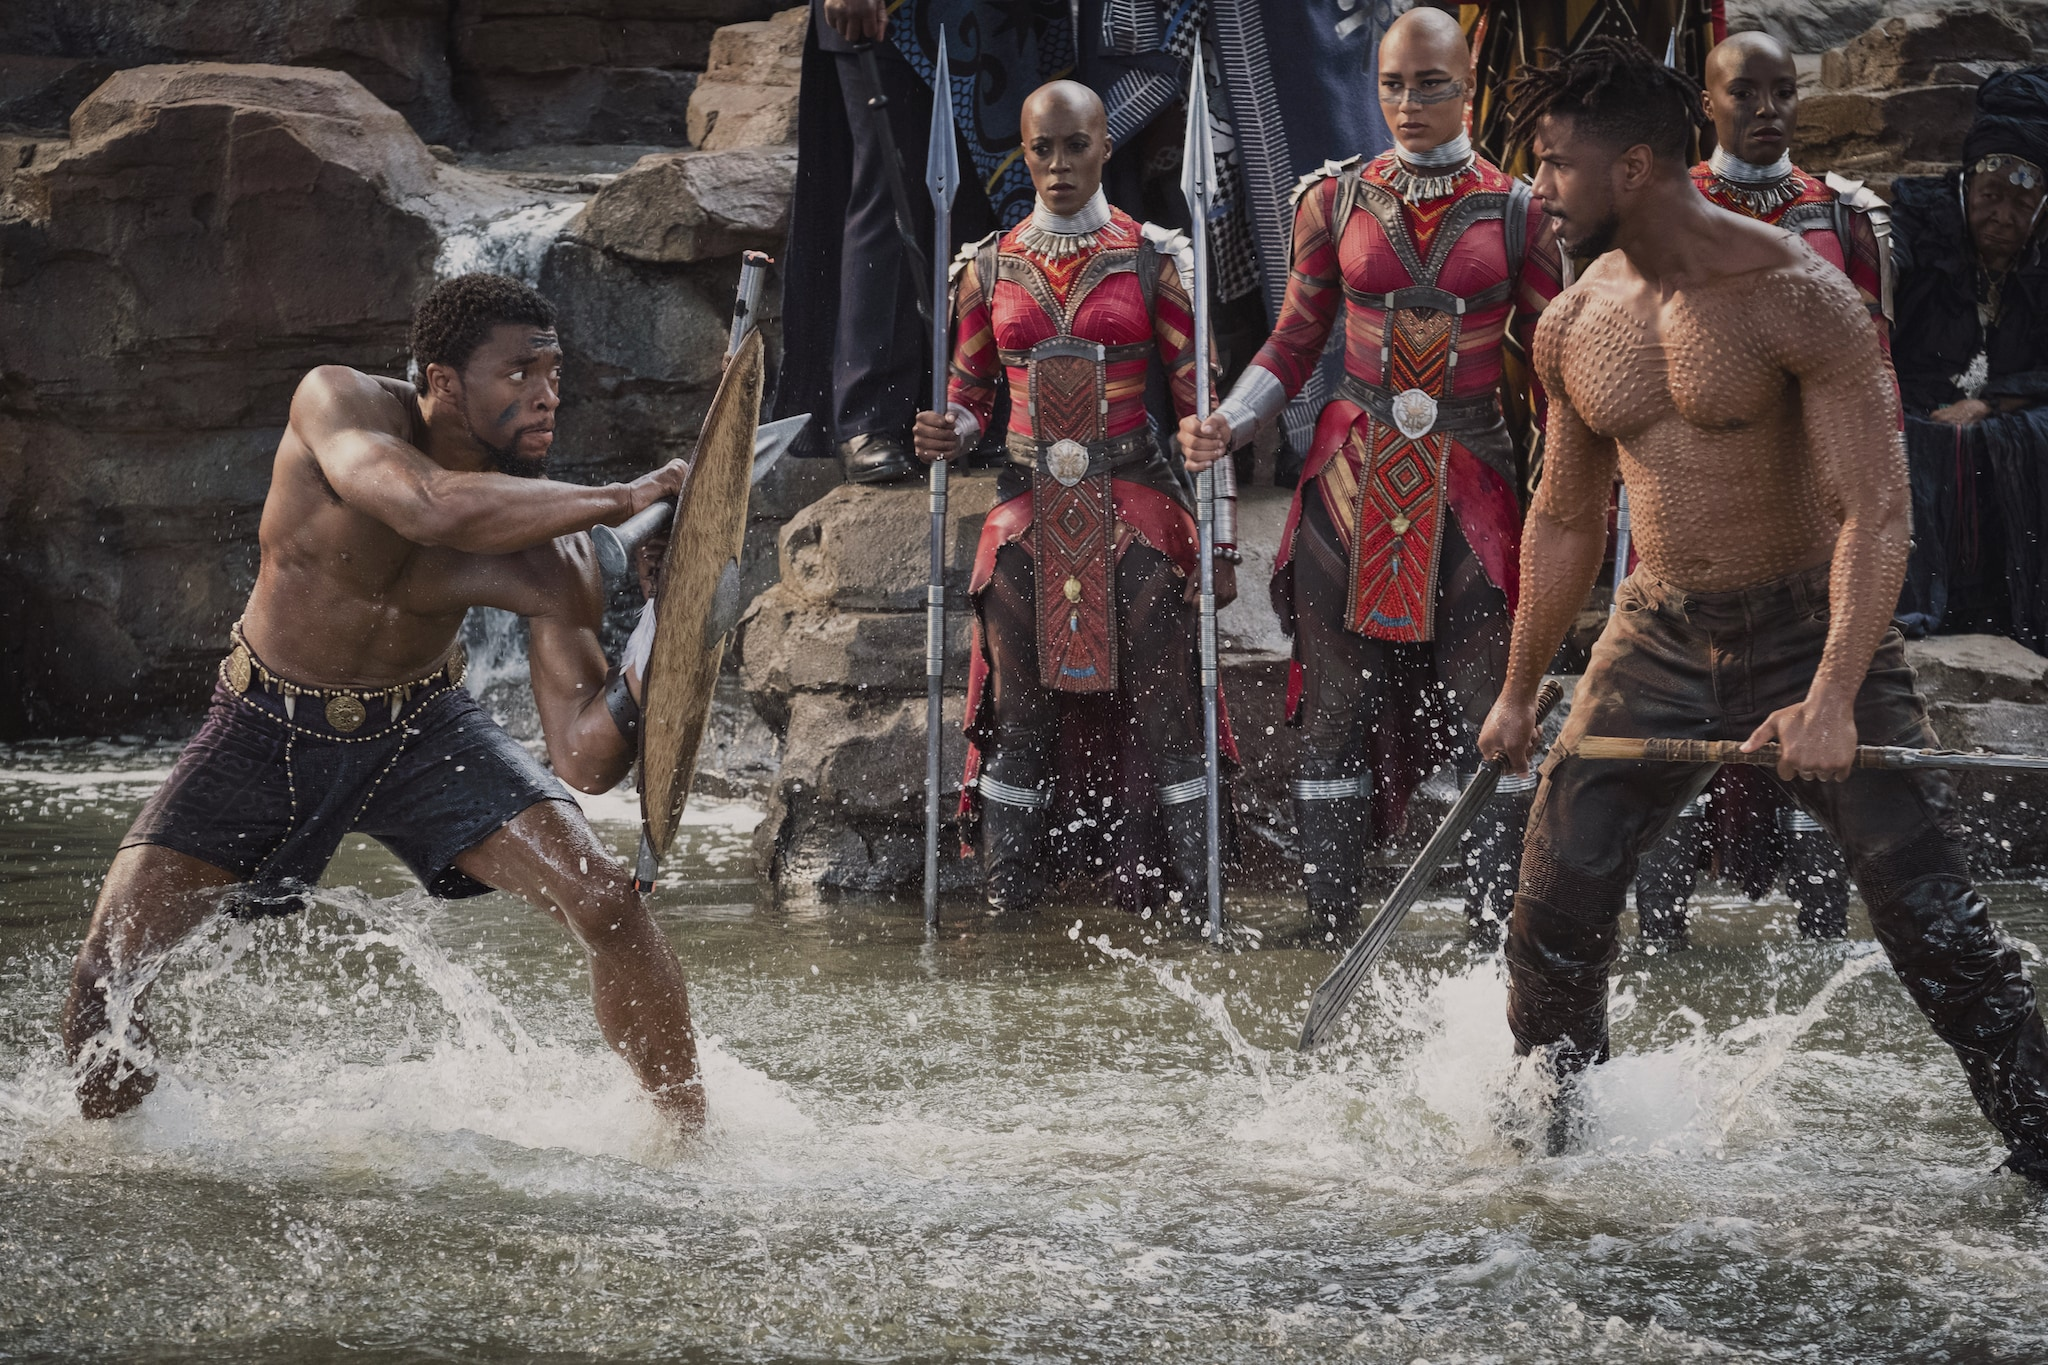 'Black Panther' stars Chadwick Boseman and Michael B. Jordan